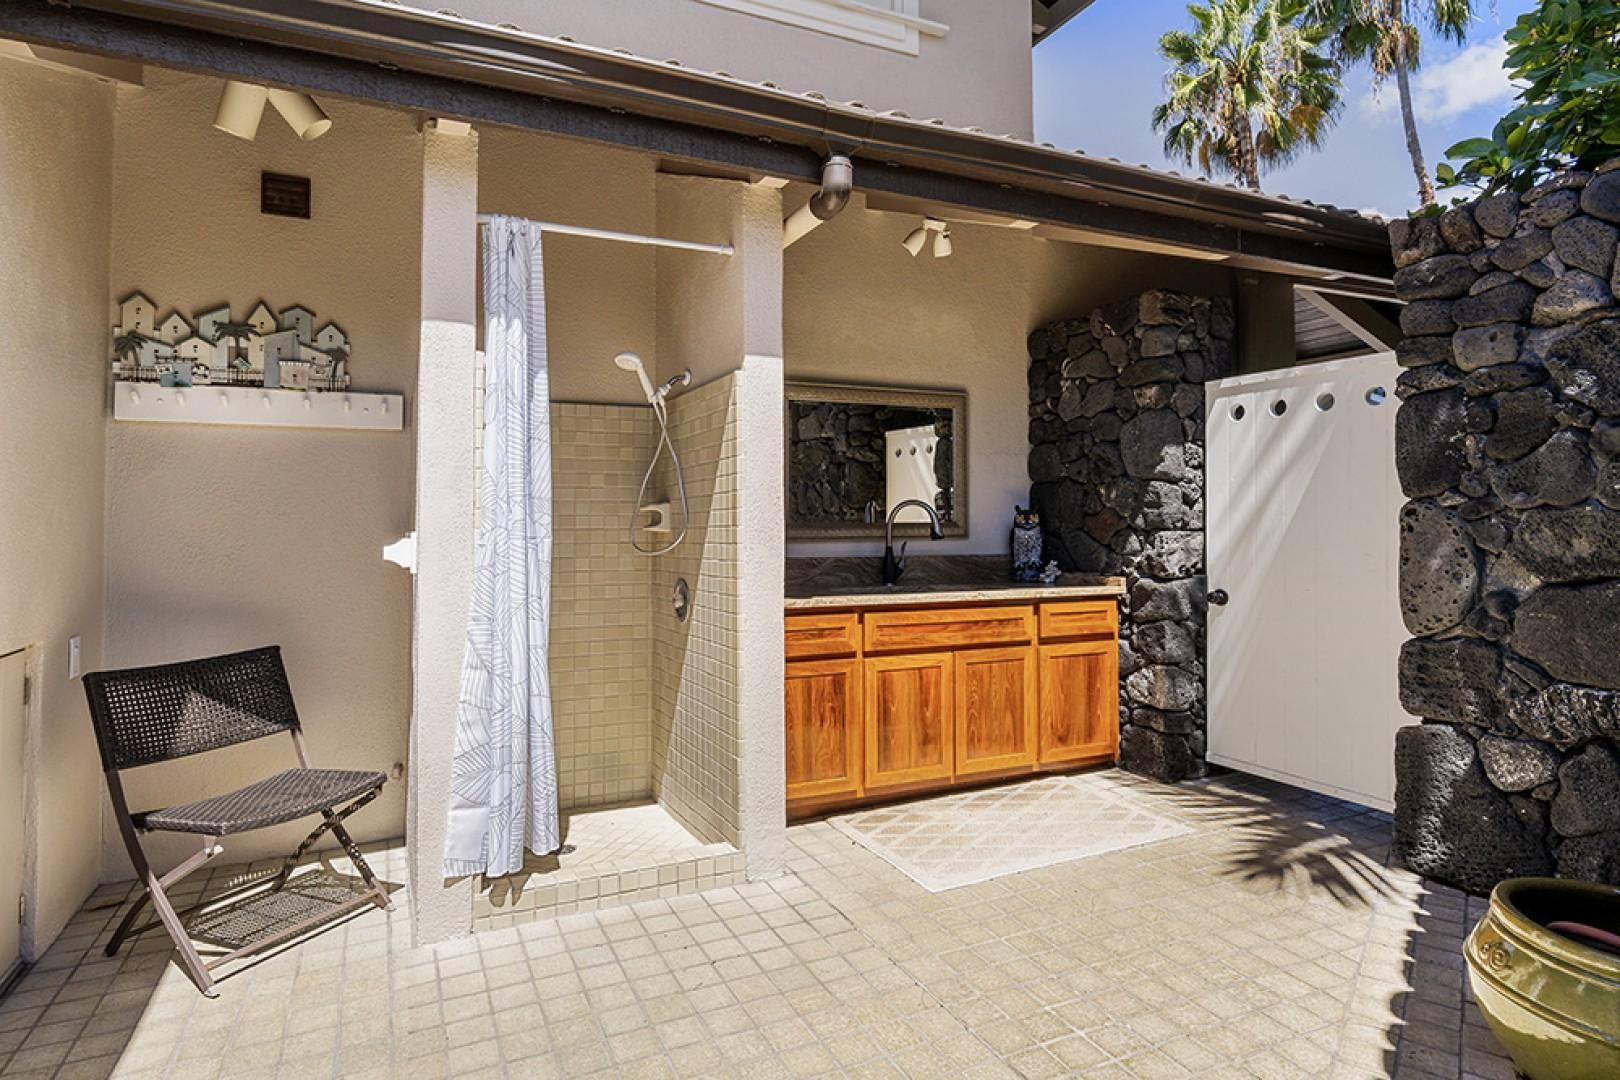 Out door shower and Laundry sink area